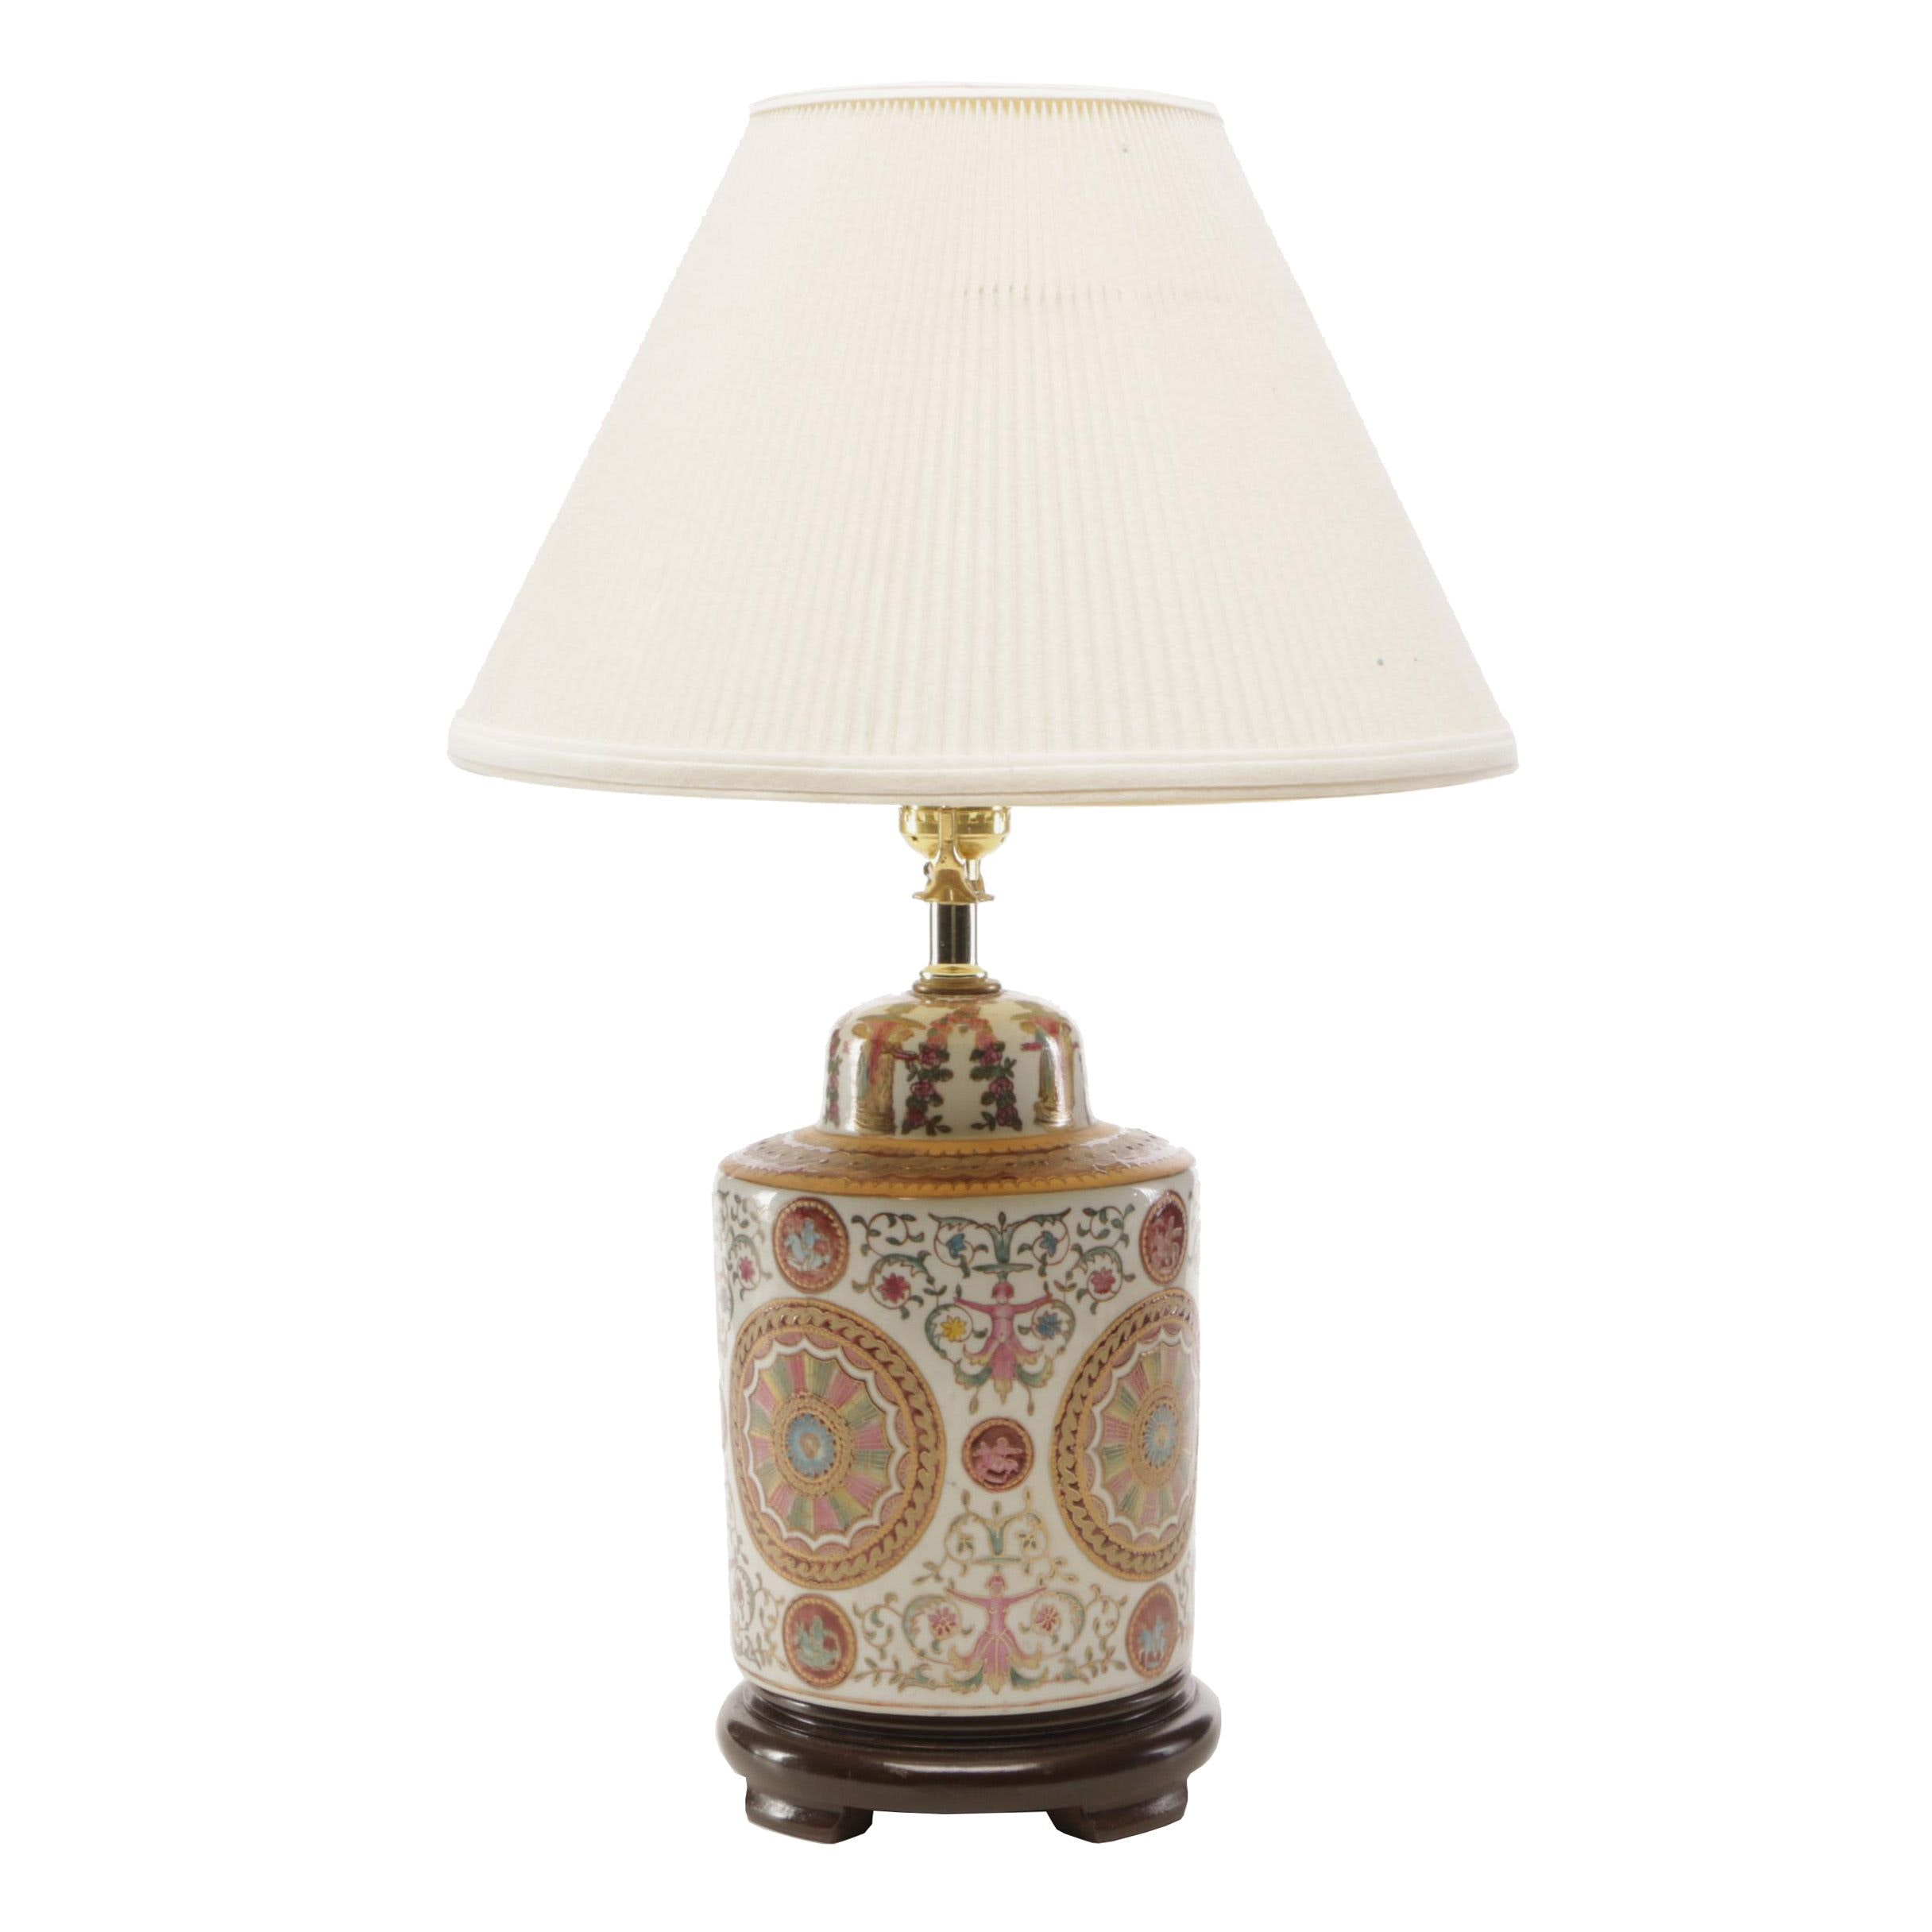 Hand-Painted Neoclassical Style Vase Form Table Lamp